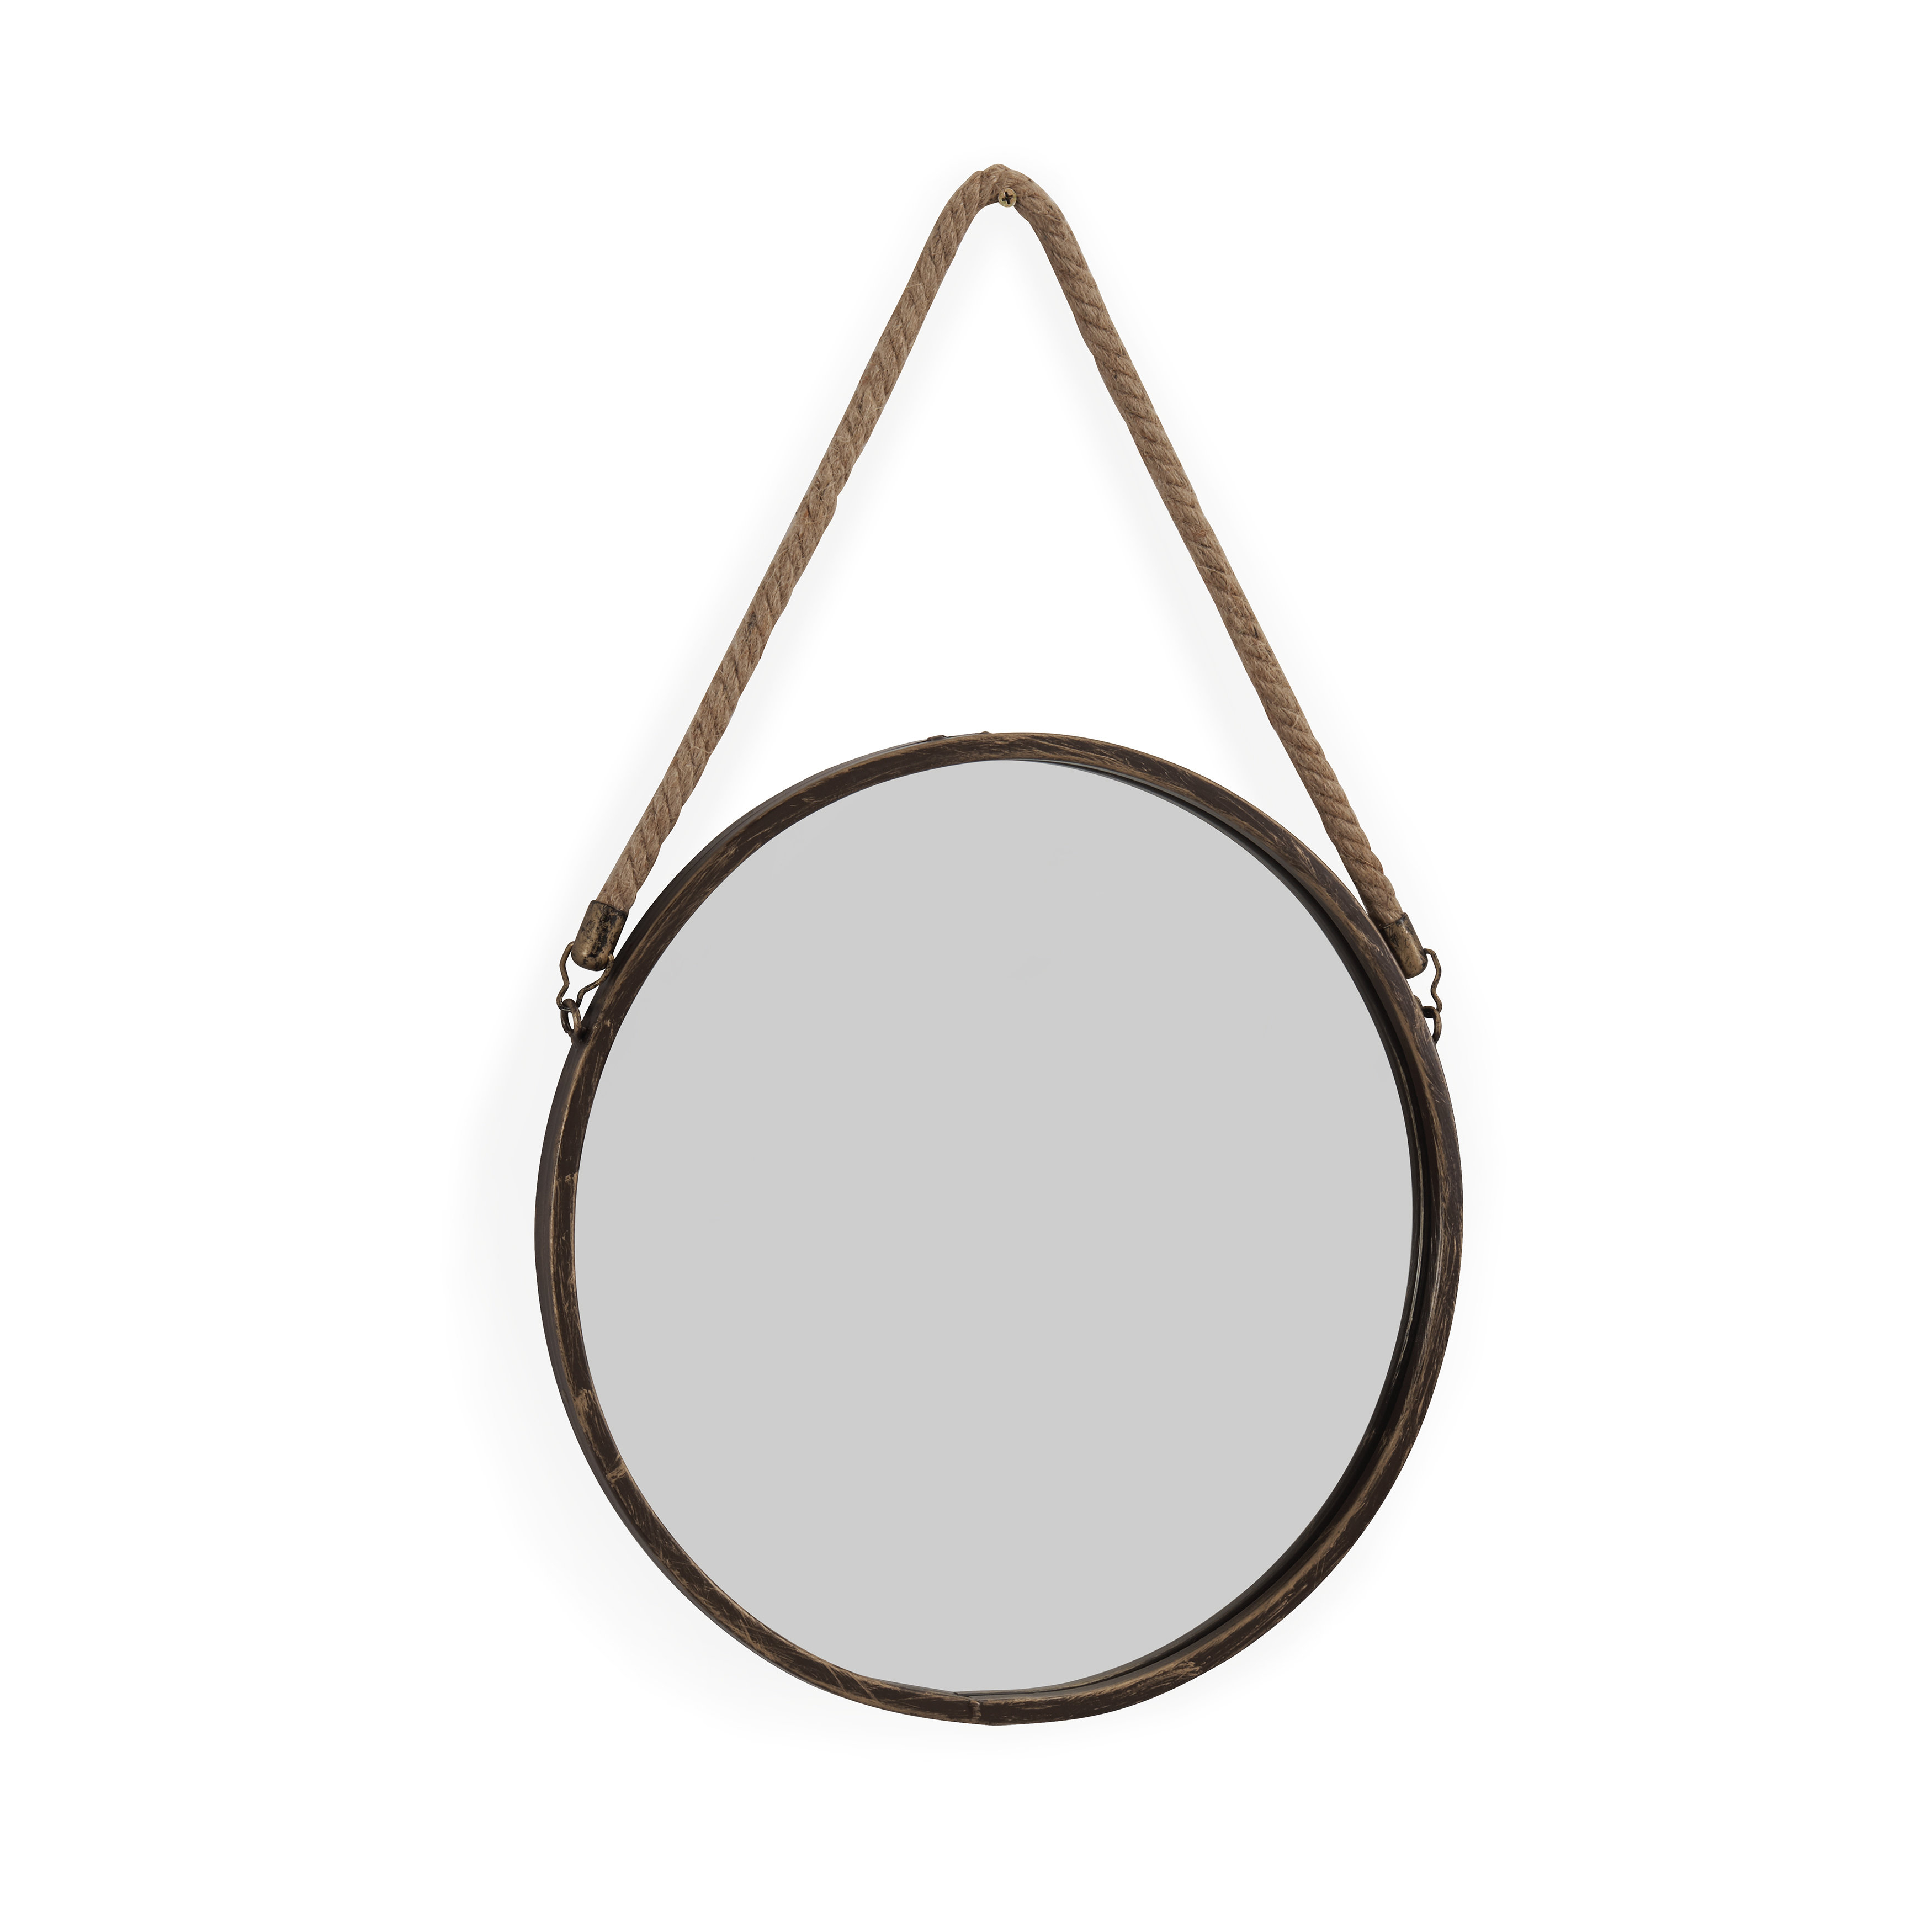 Modern & Contemporary Rope Mirror | Allmodern With Regard To Knott Modern & Contemporary Accent Mirrors (Image 17 of 20)